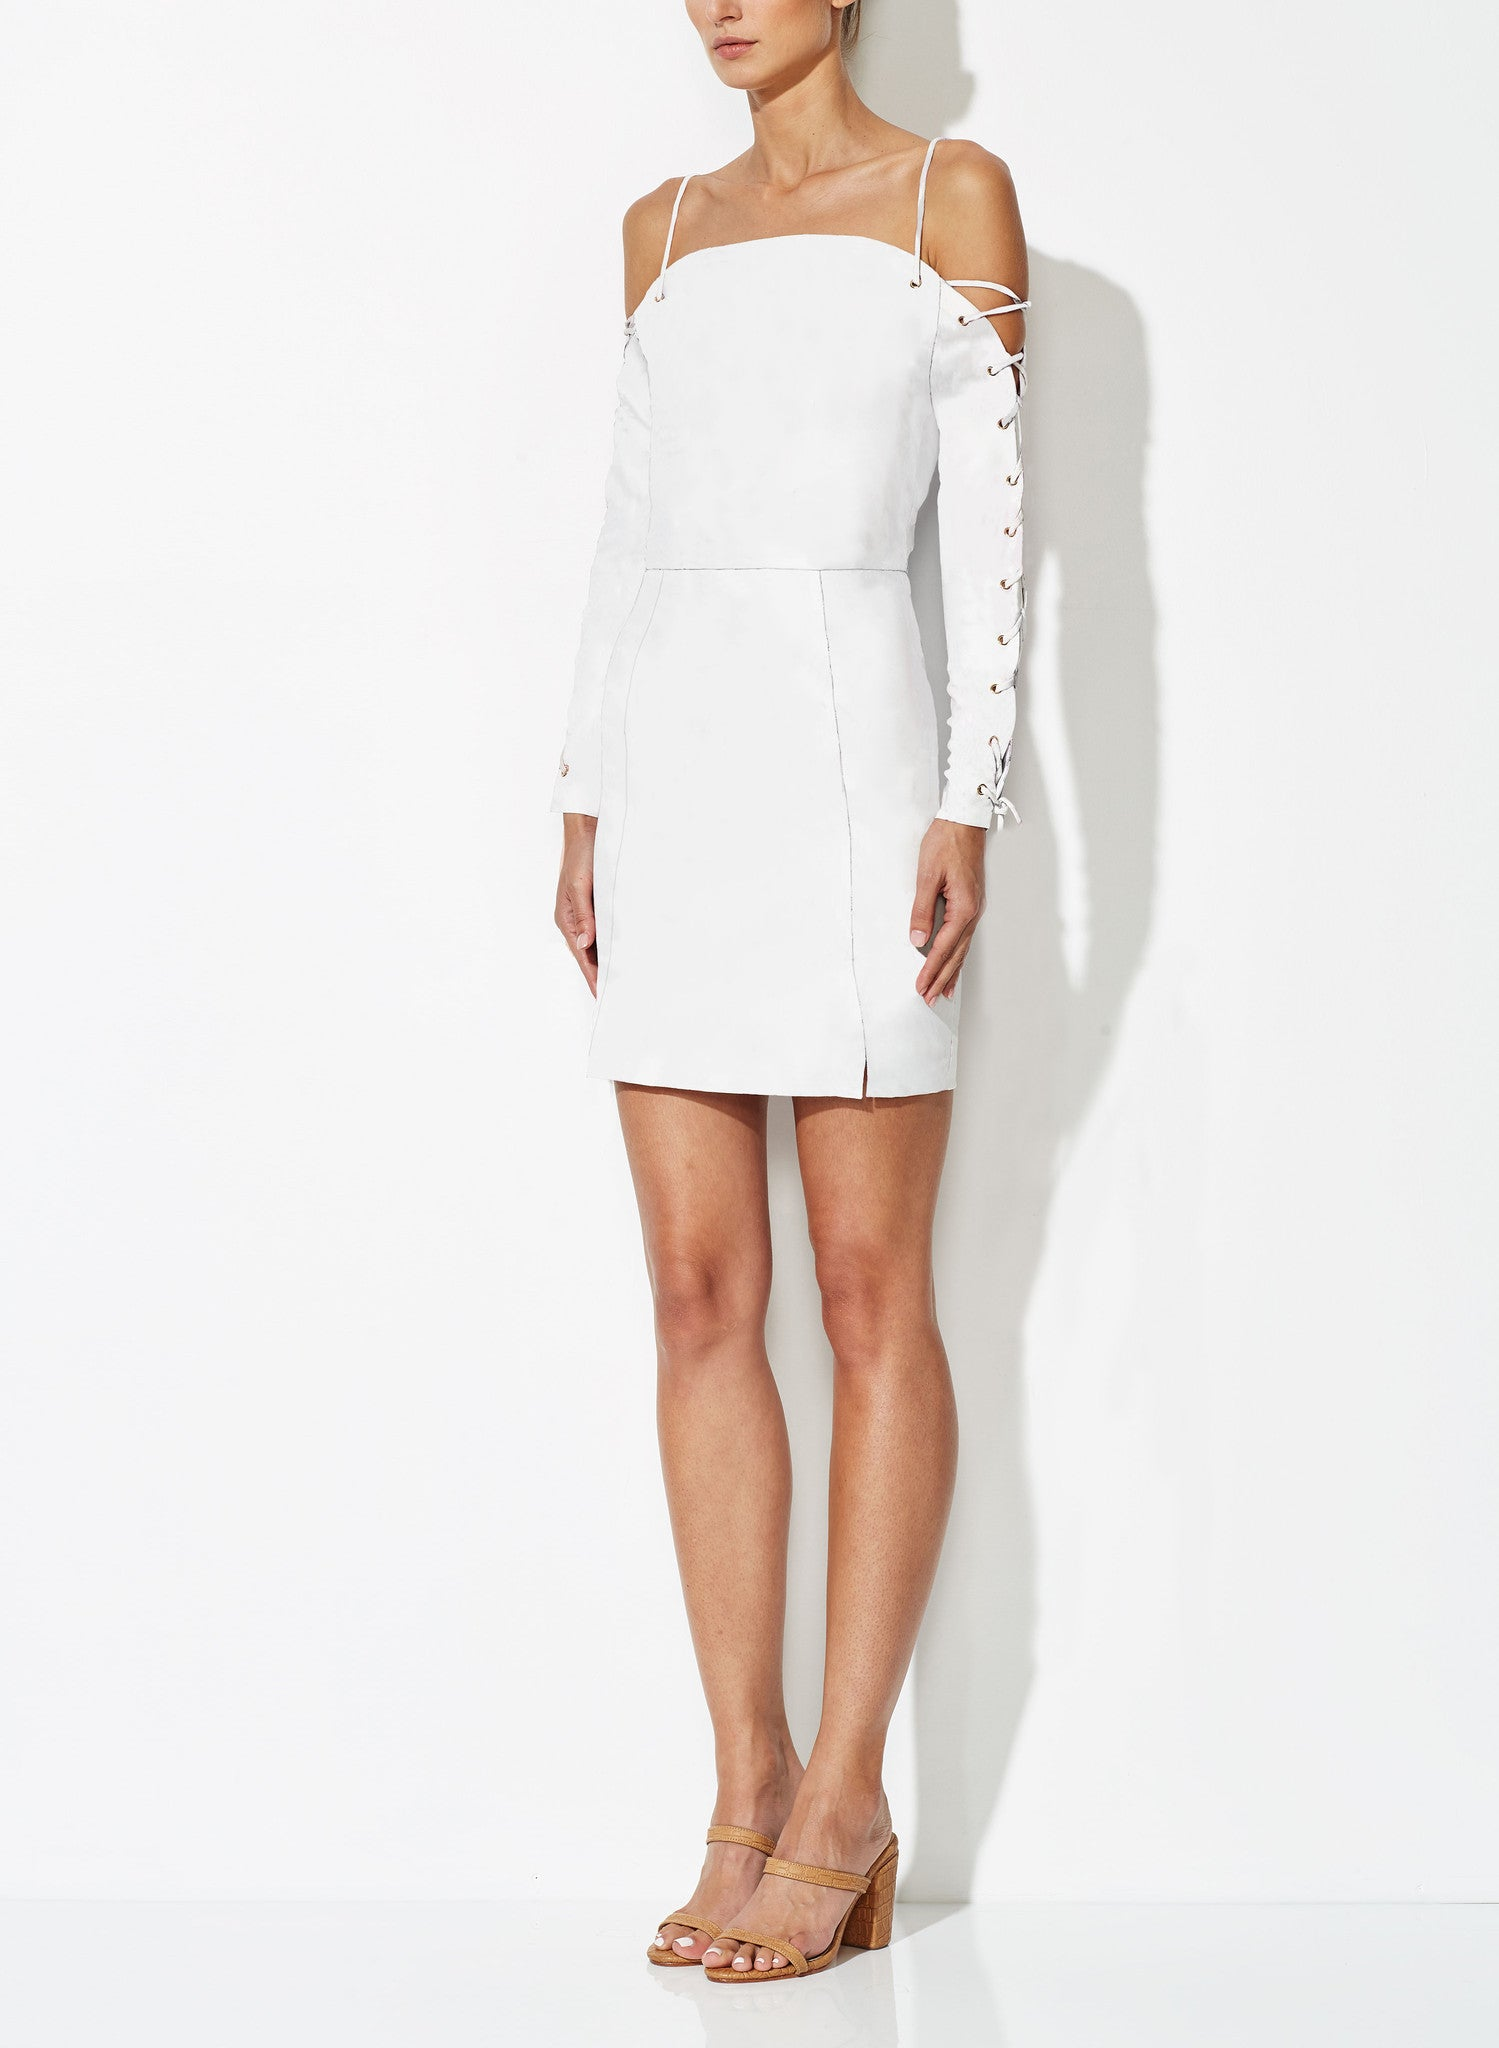 VIOLA CROSS SHORT DRESS WHITE